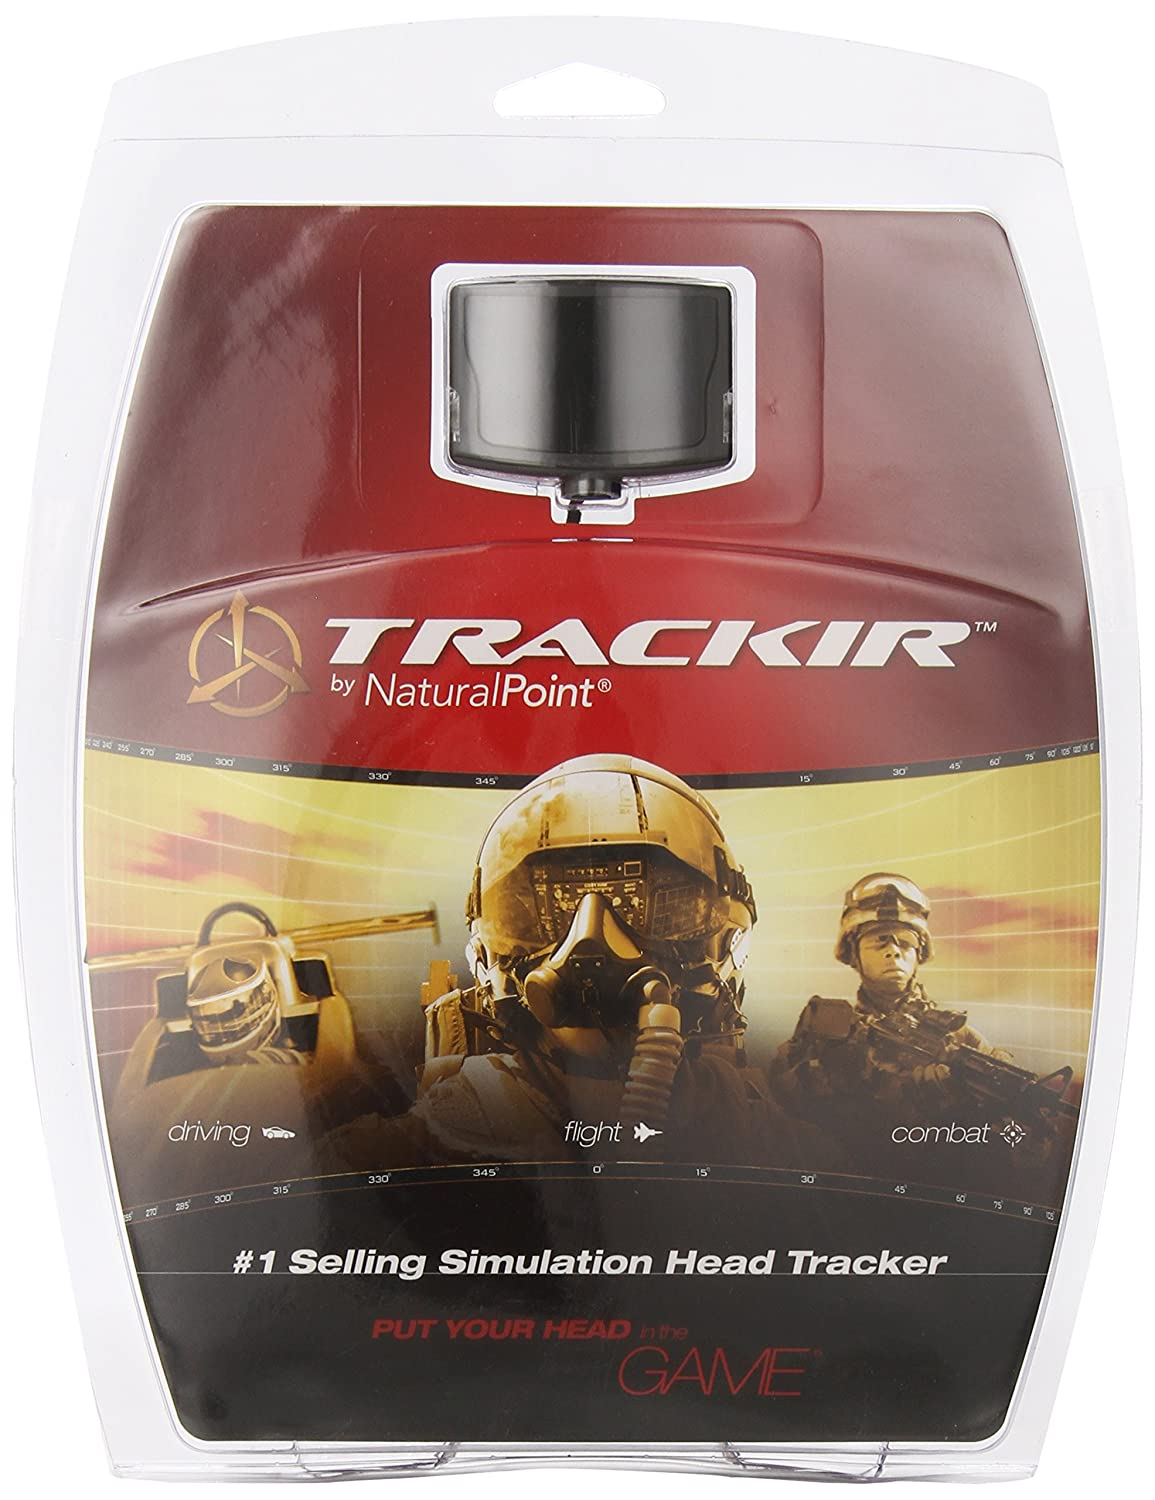 TrackIr 5 Premium Head Tracking for Gaming